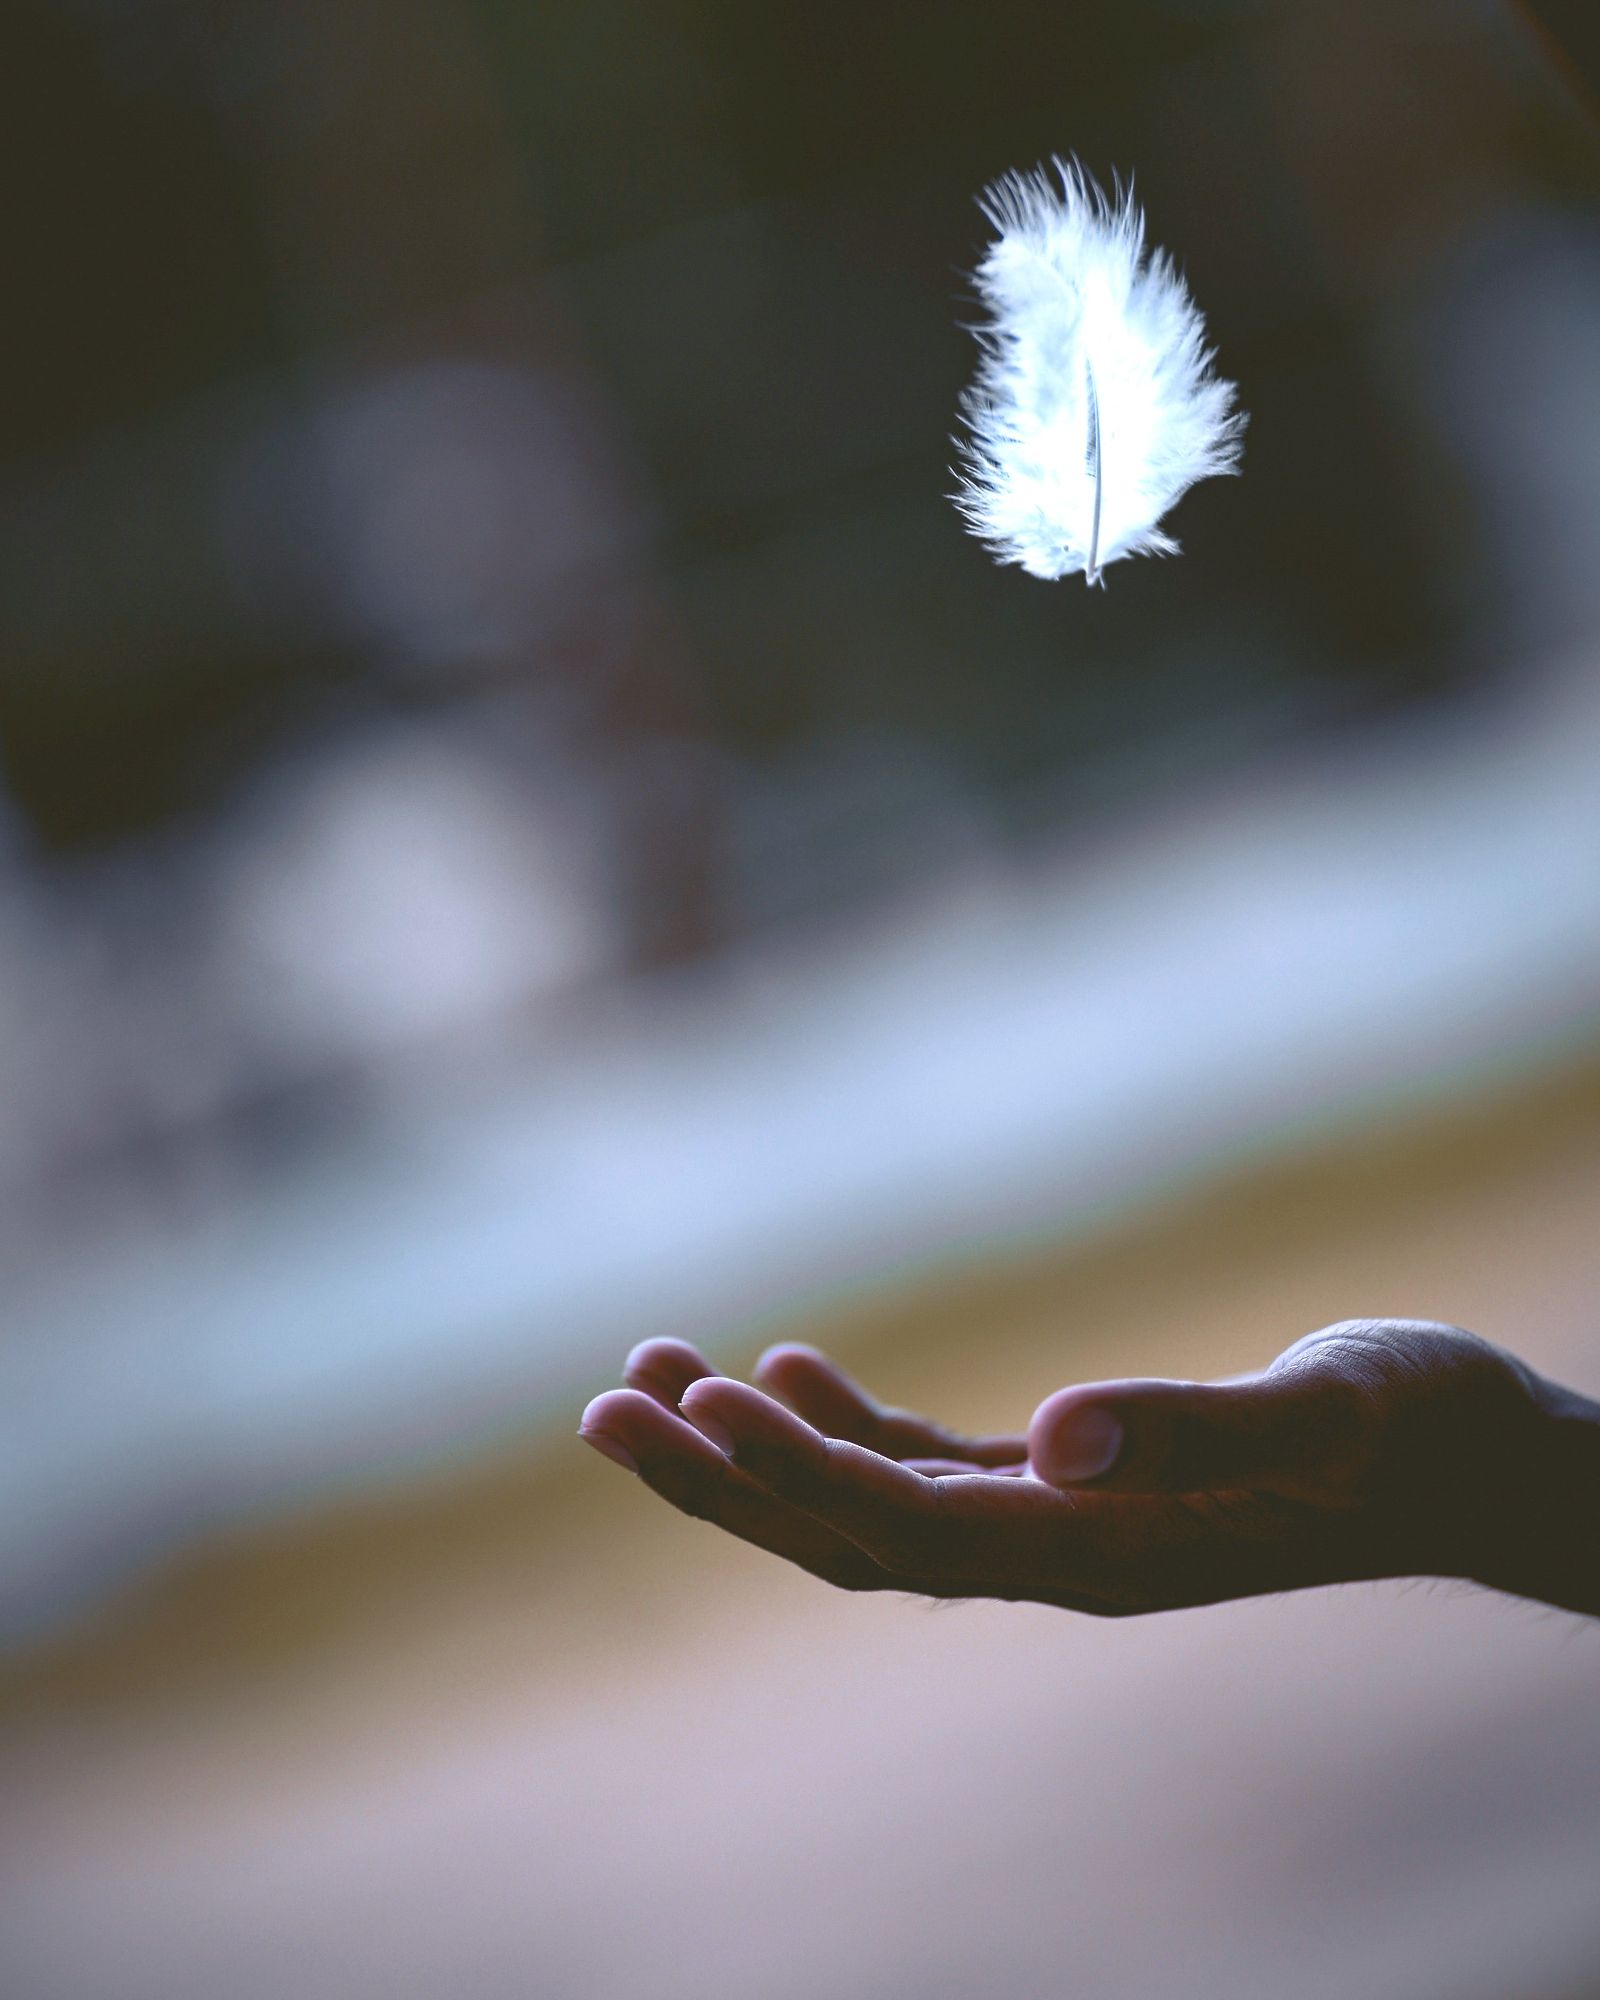 Close up of a white feather floating above a man's hand